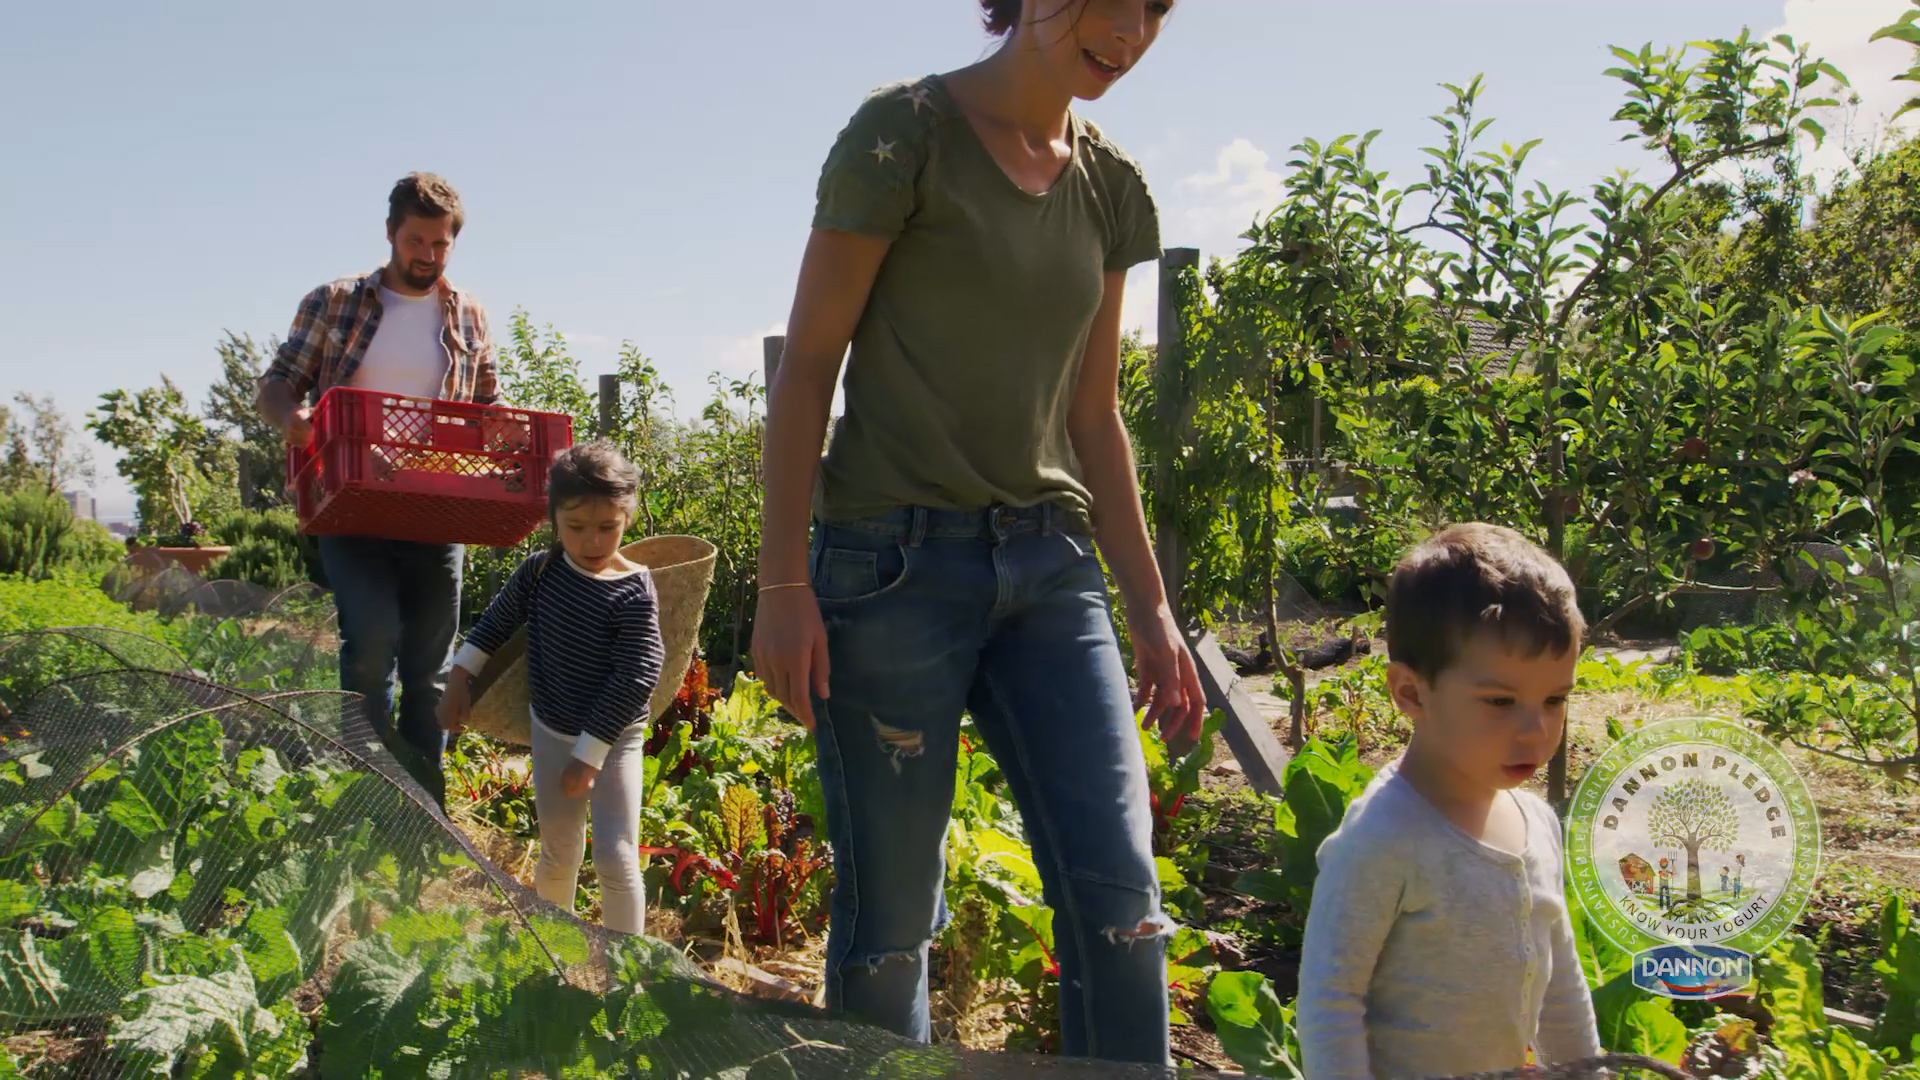 Video: Dannon Pledge Promotes Sustainable Agriculture